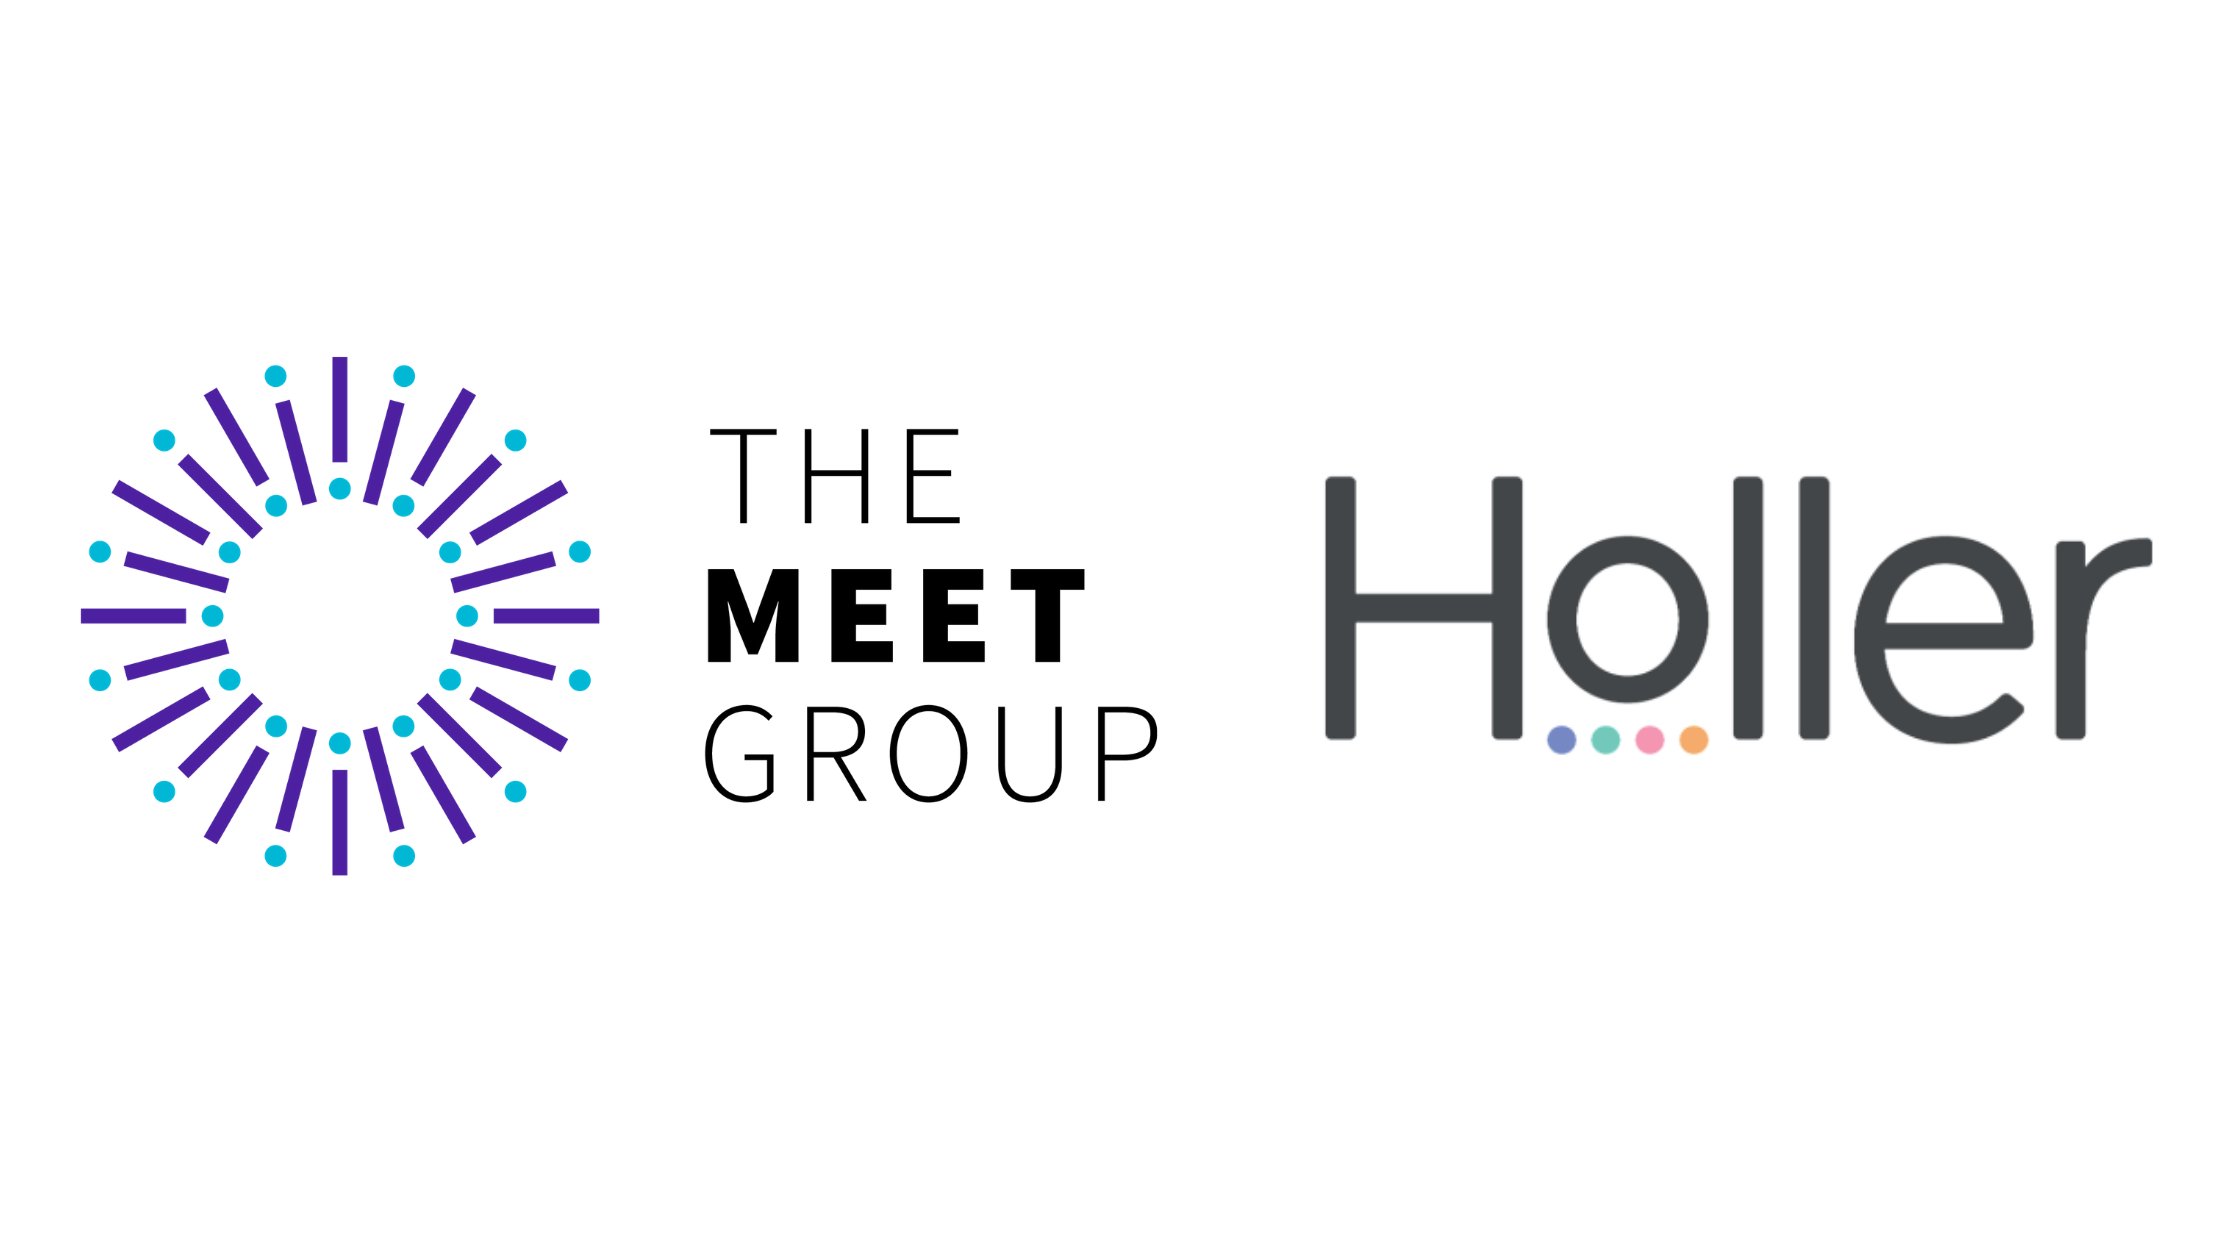 The Meet Group Adds GIFs and Stickers to MeetMe With 'Holler' Partnership